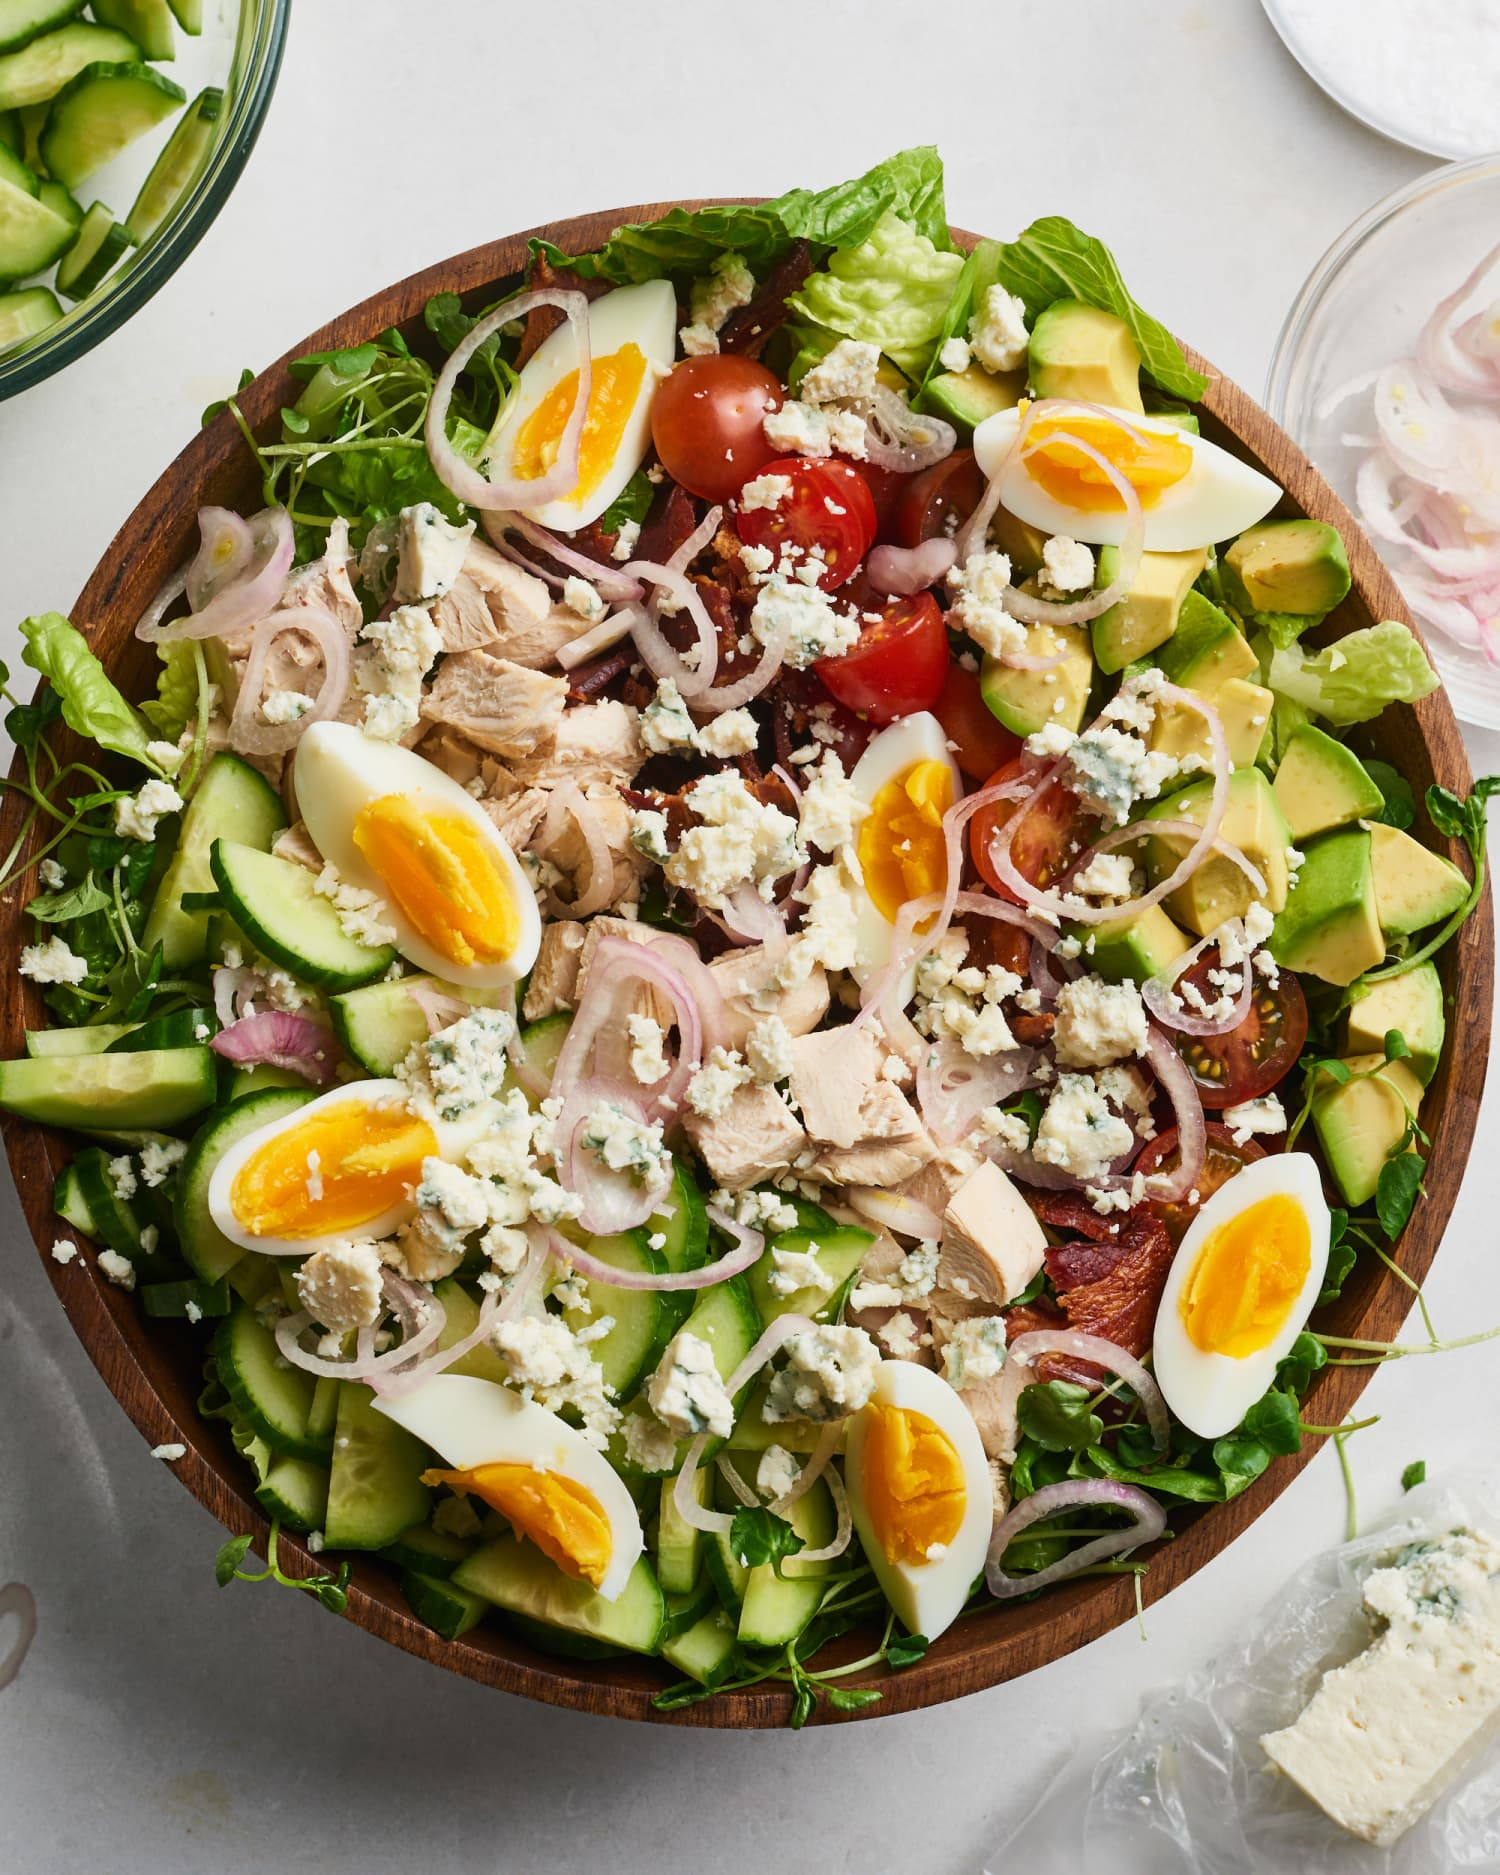 The Very Best Way to Make a Classic Cobb Salad at Home